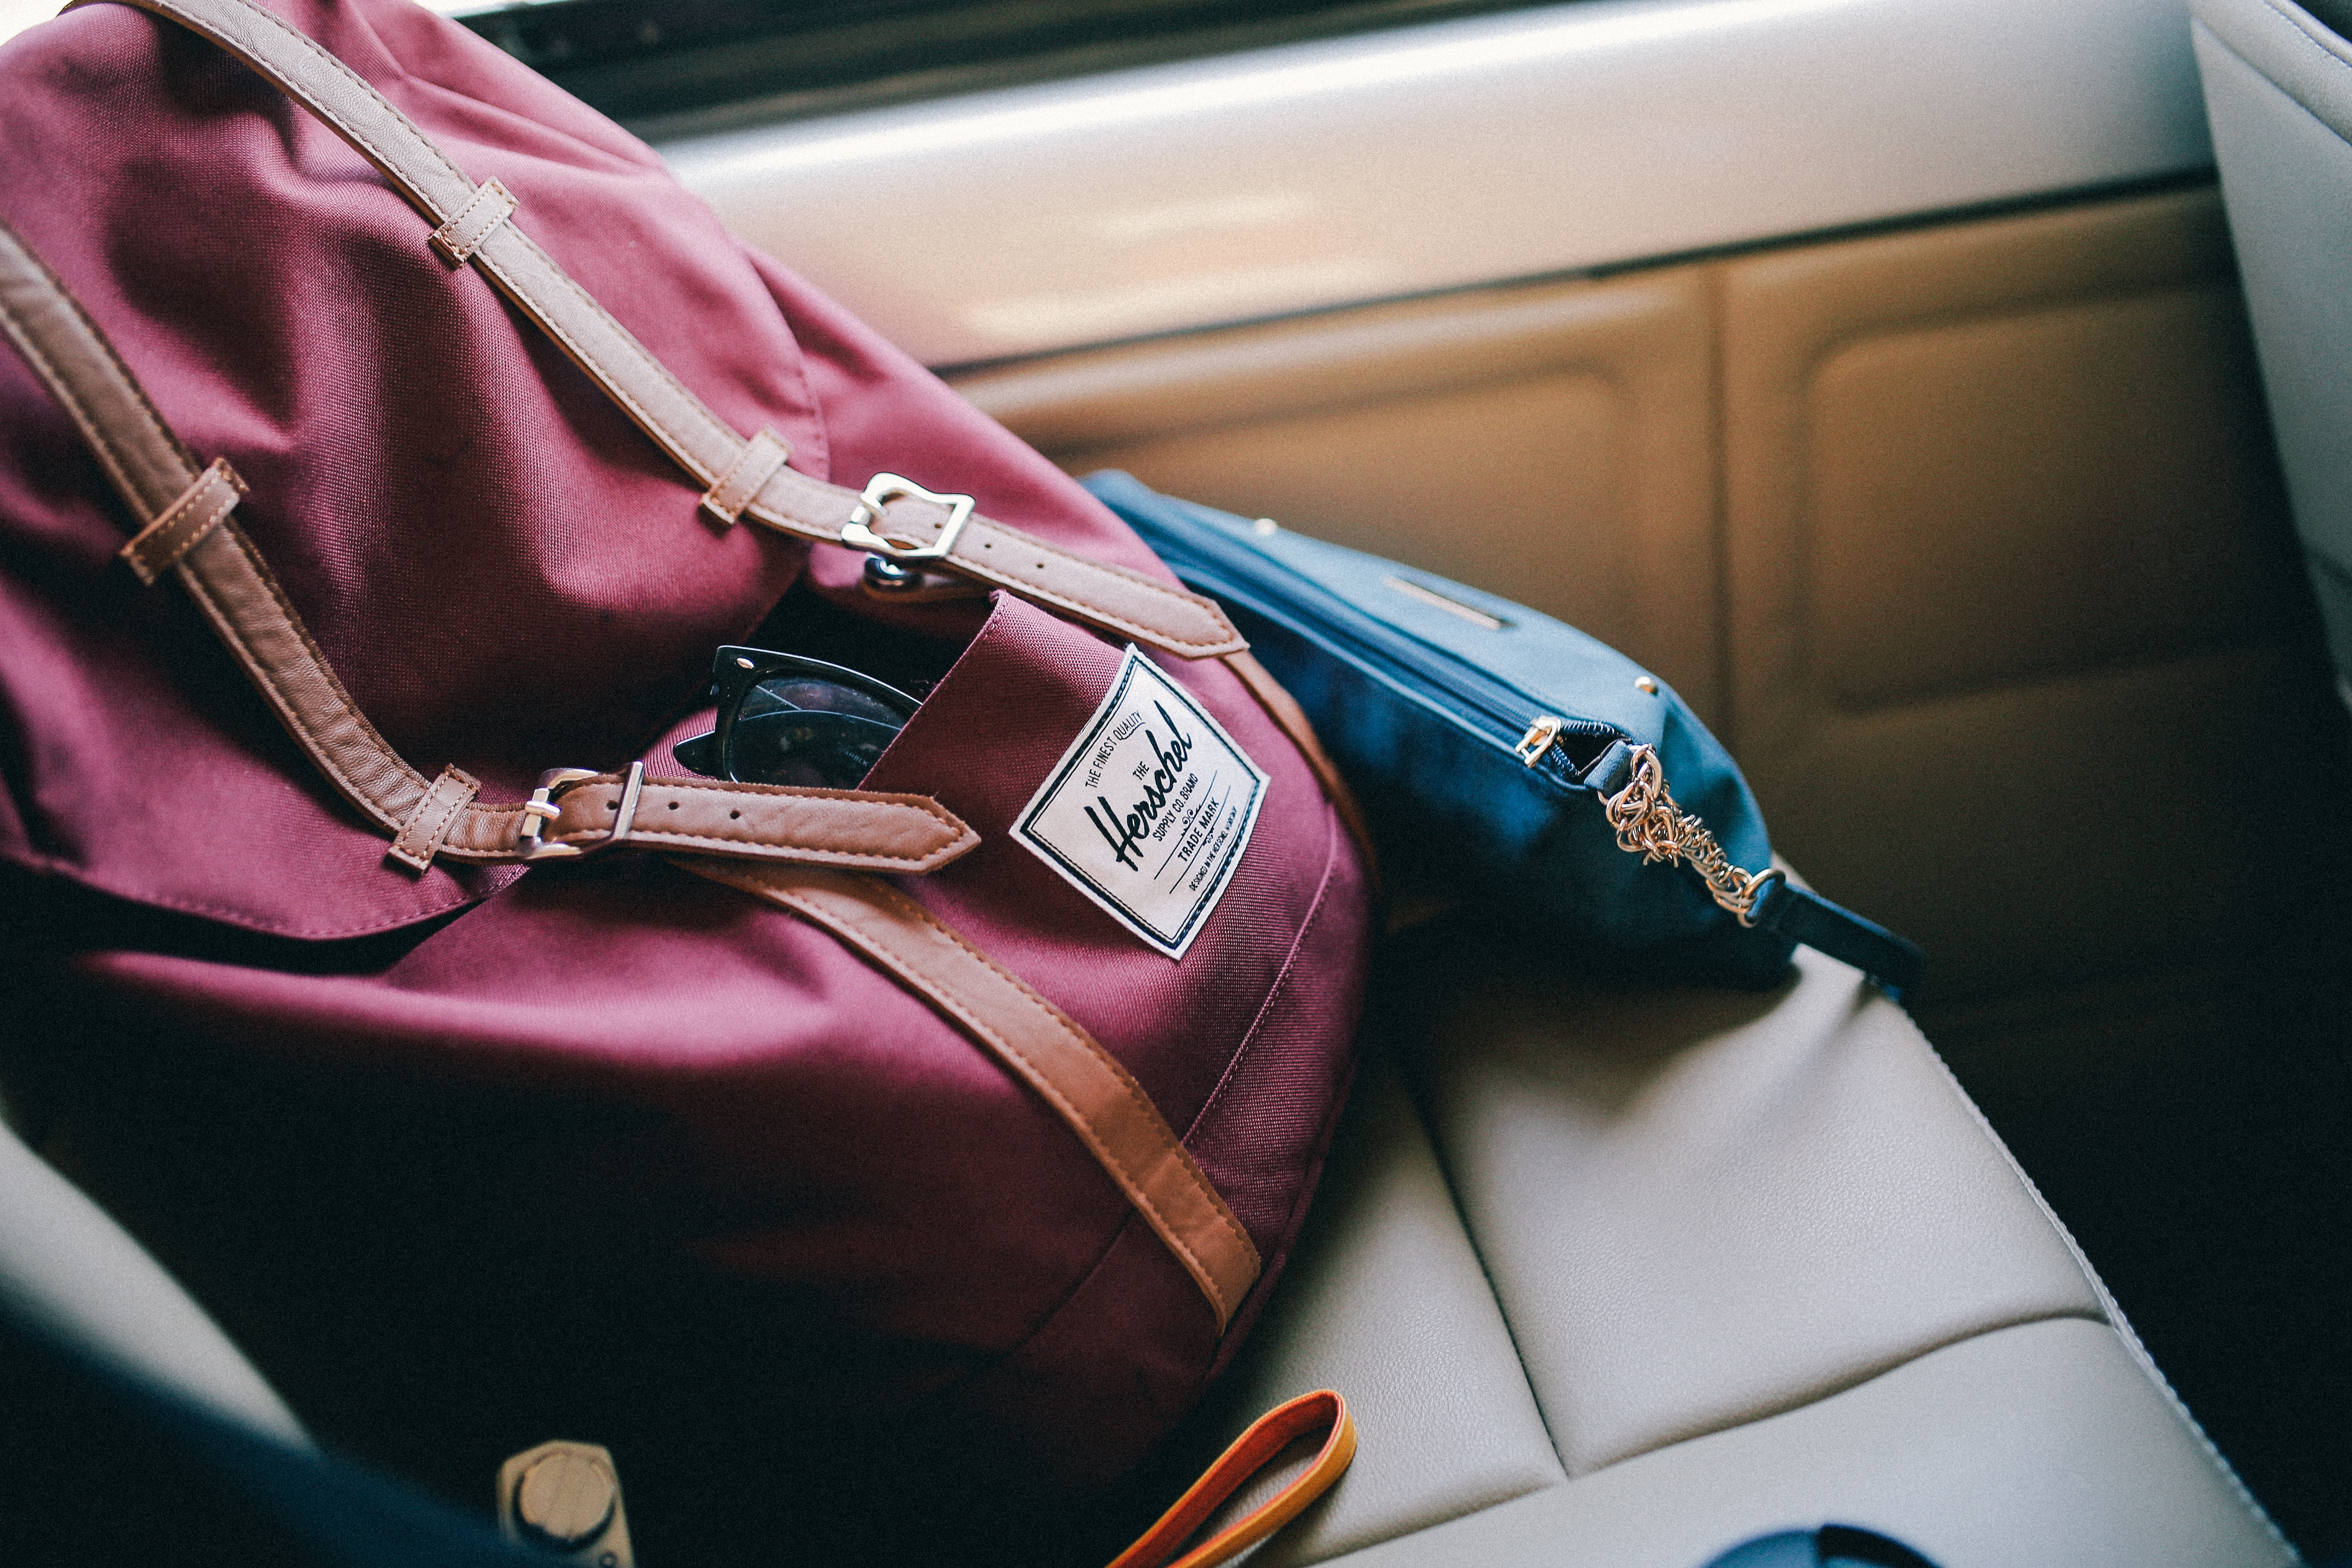 maroon Herschel bag inside car